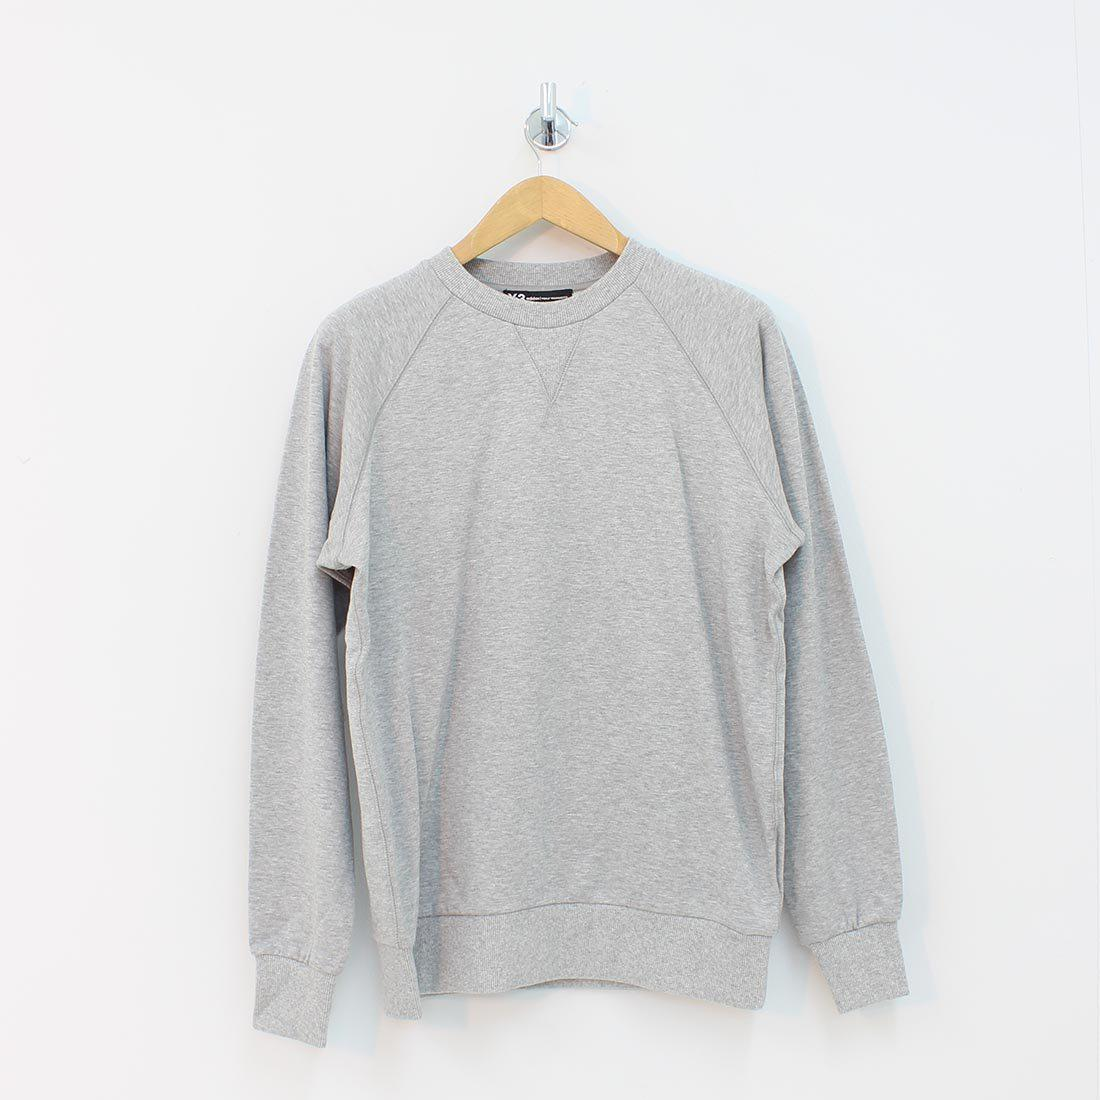 Lyst - Y-3 Adidas M Cl Crew Sweat Lb Grey in Gray for Men 56d2ce88ac5d